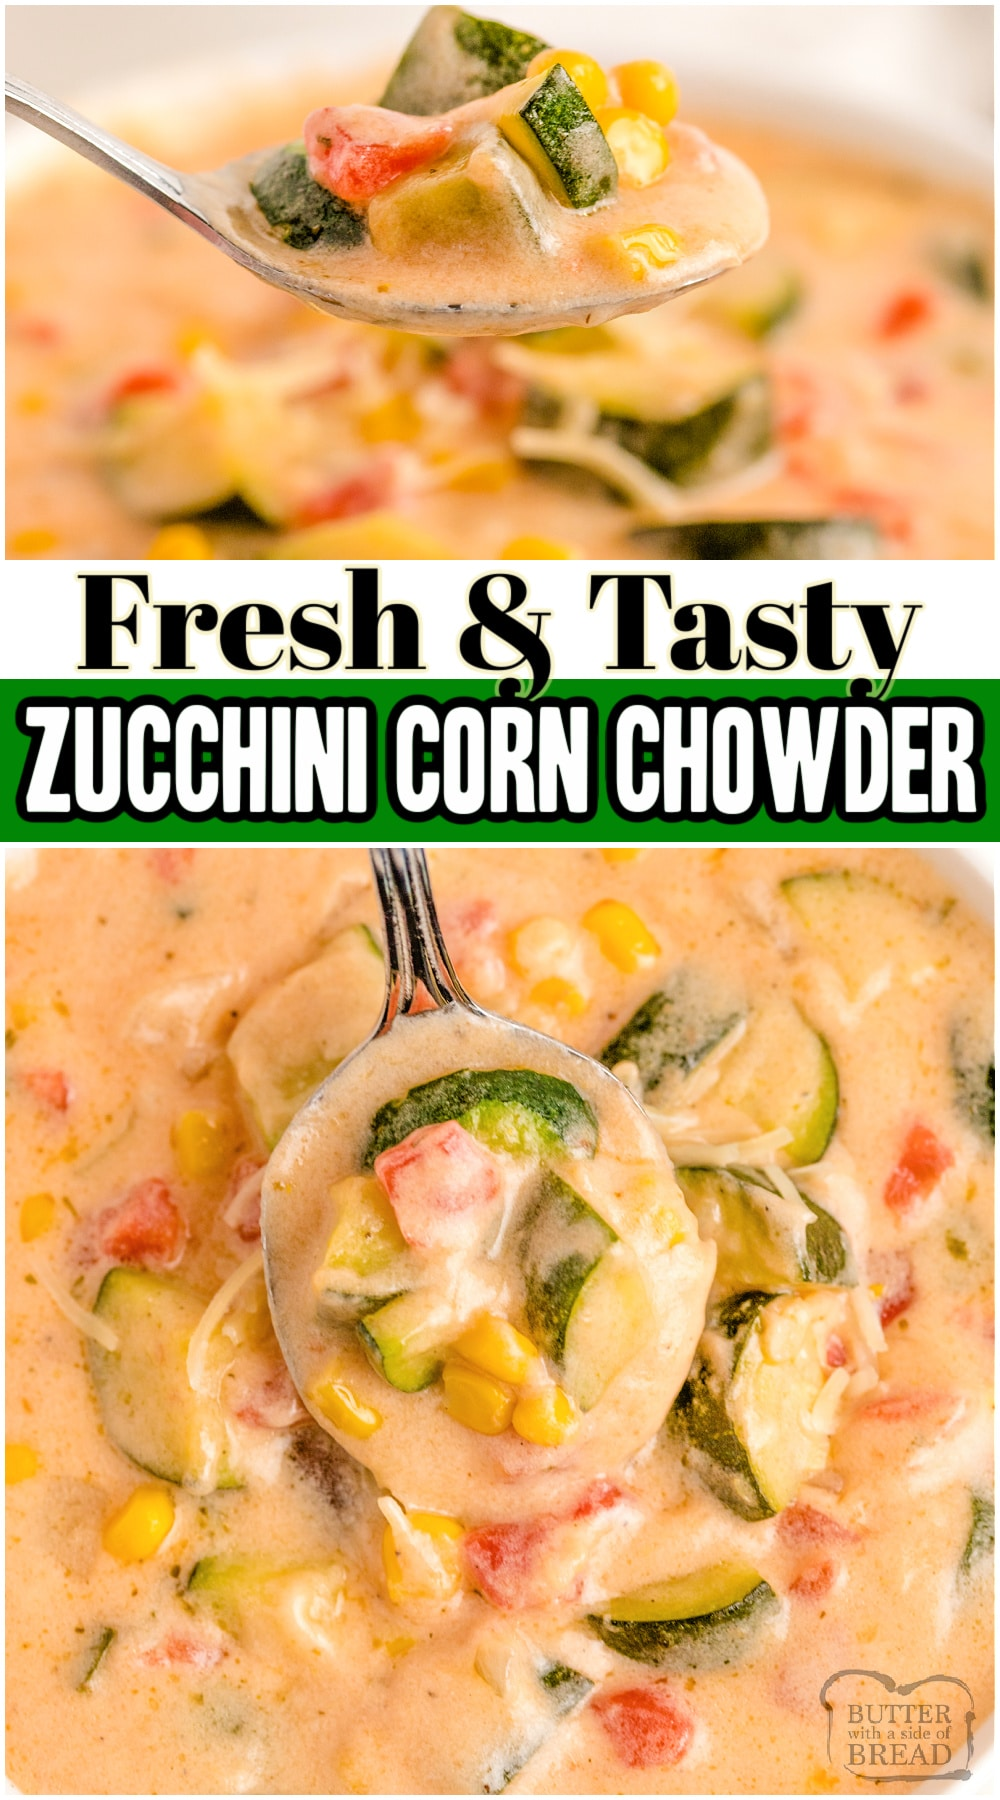 Zucchini Corn Chowder recipe that's perfect for summer dinners when the garden is plentiful. Great way to use fresh summer vegetables in an easy summer chowder recipe.